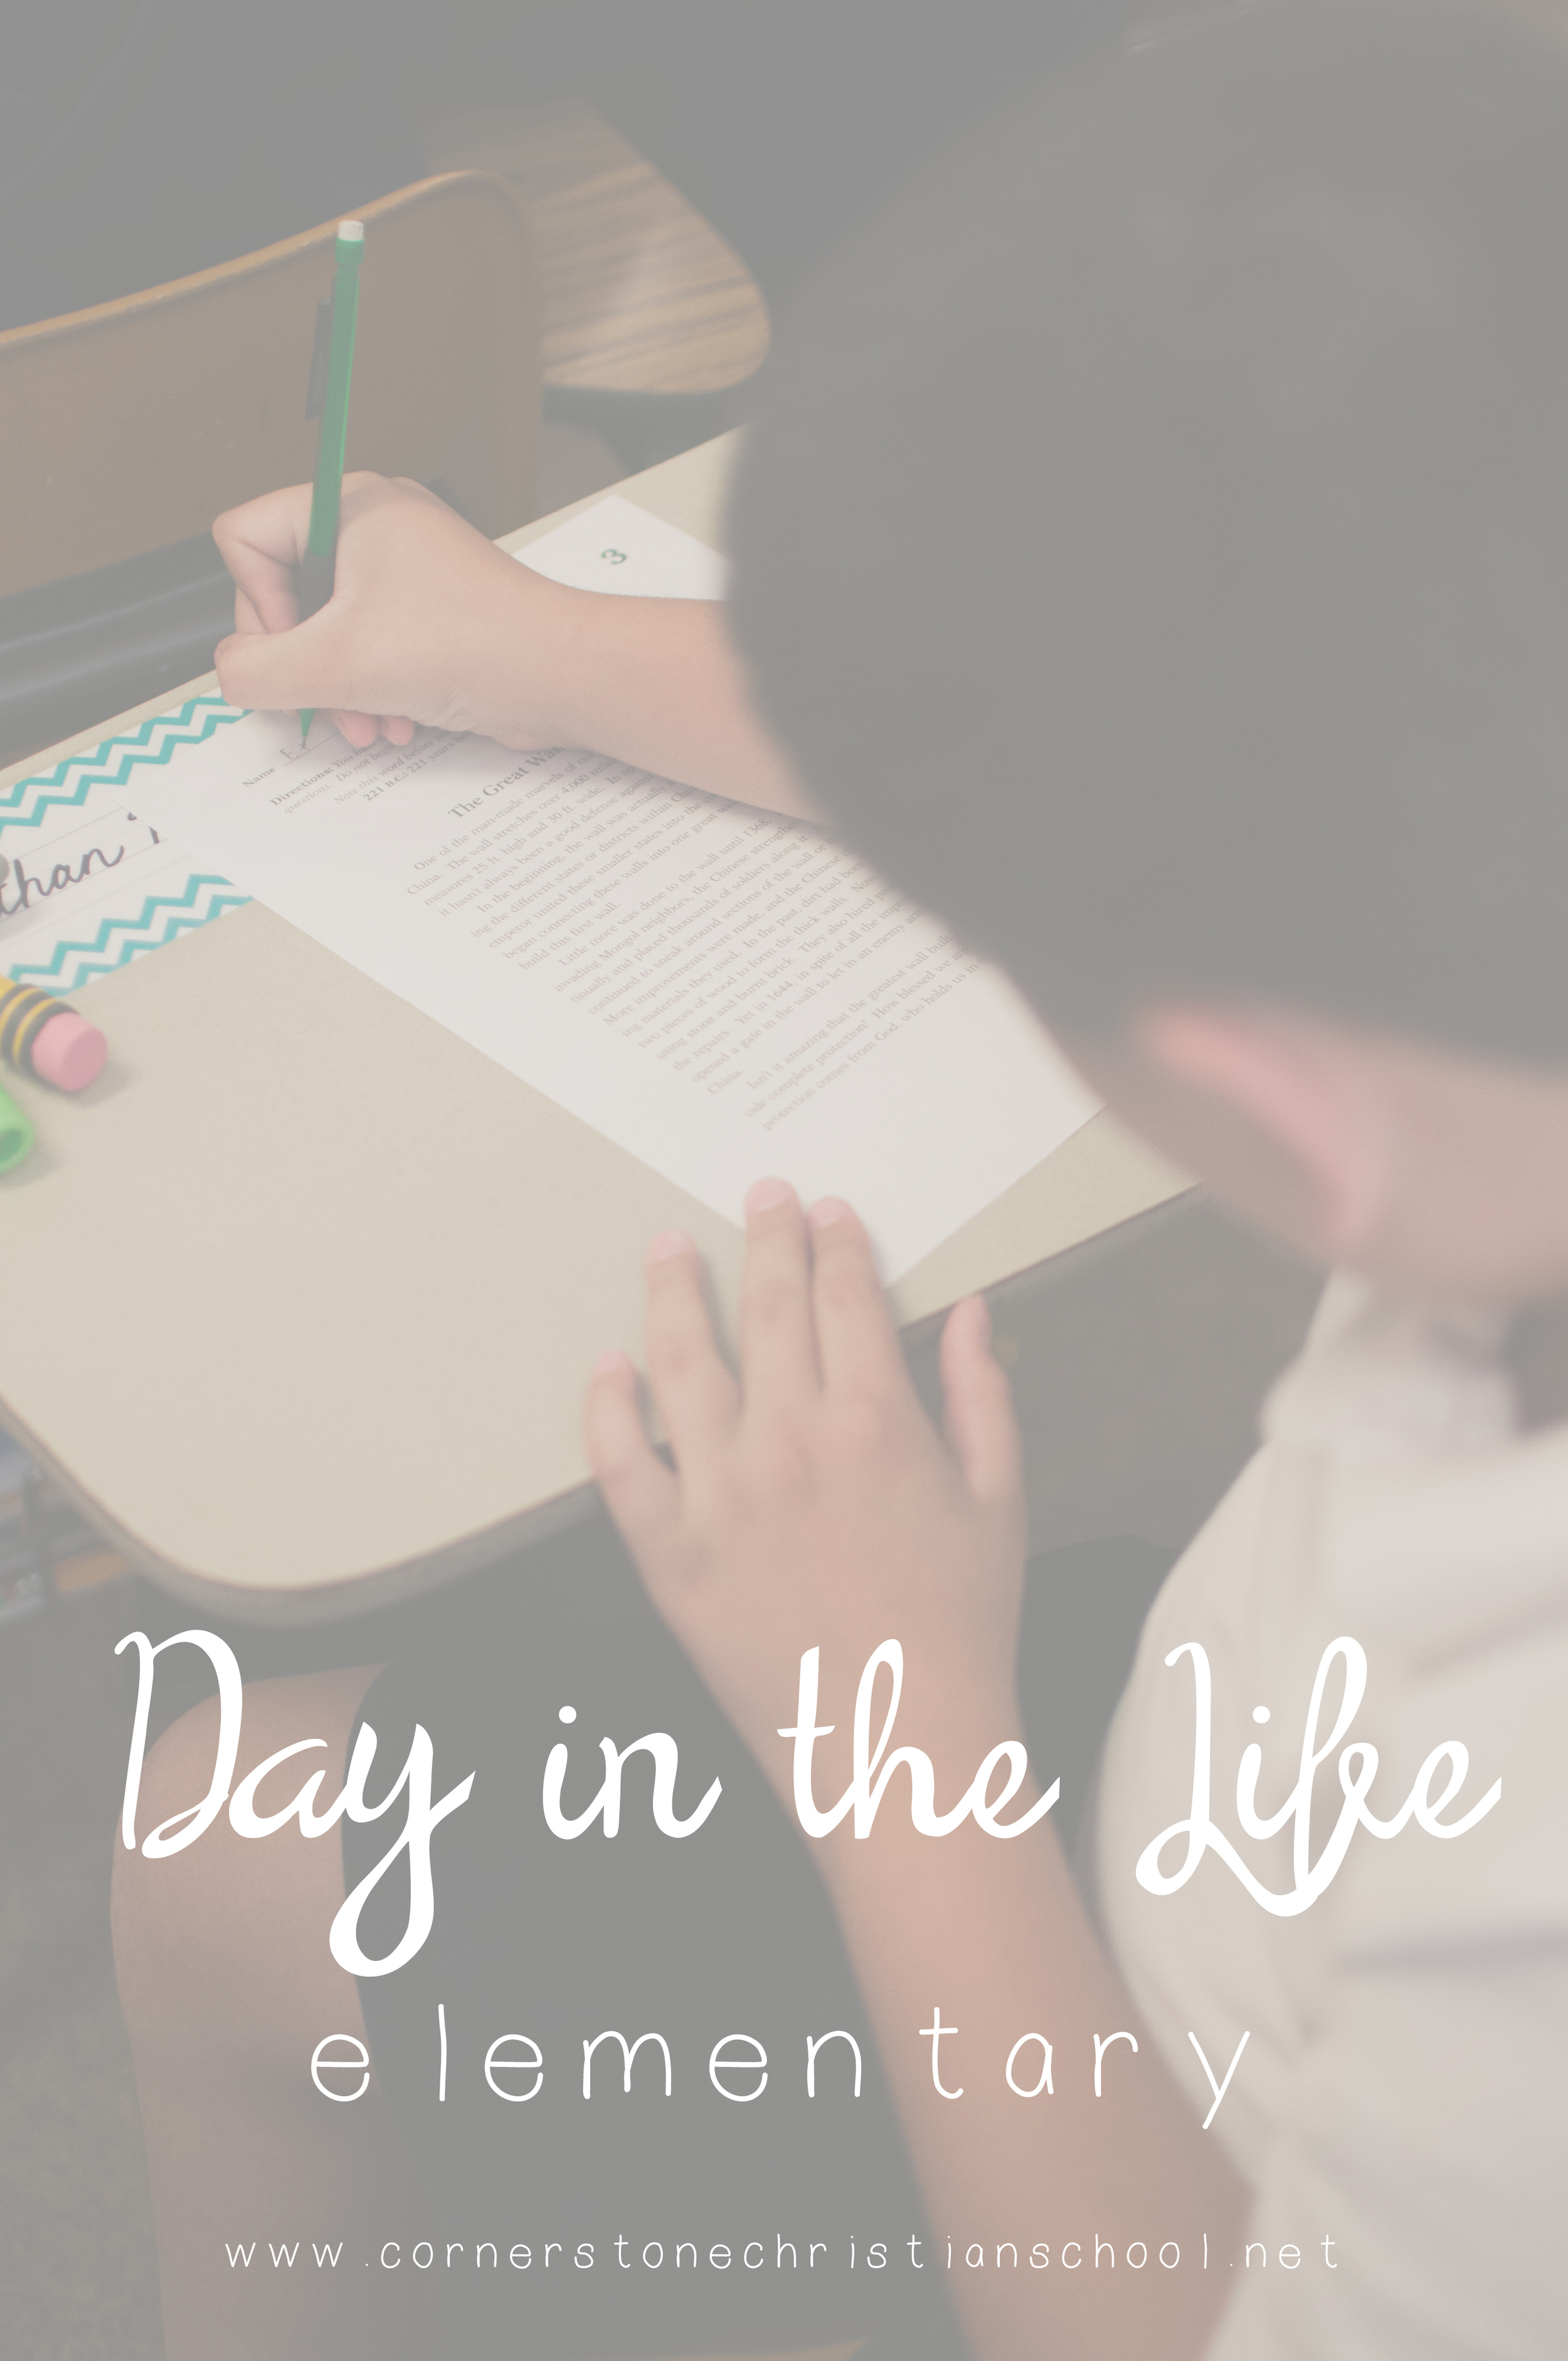 A Day in the Life of an Elementary Student // Cornerstone Christian School